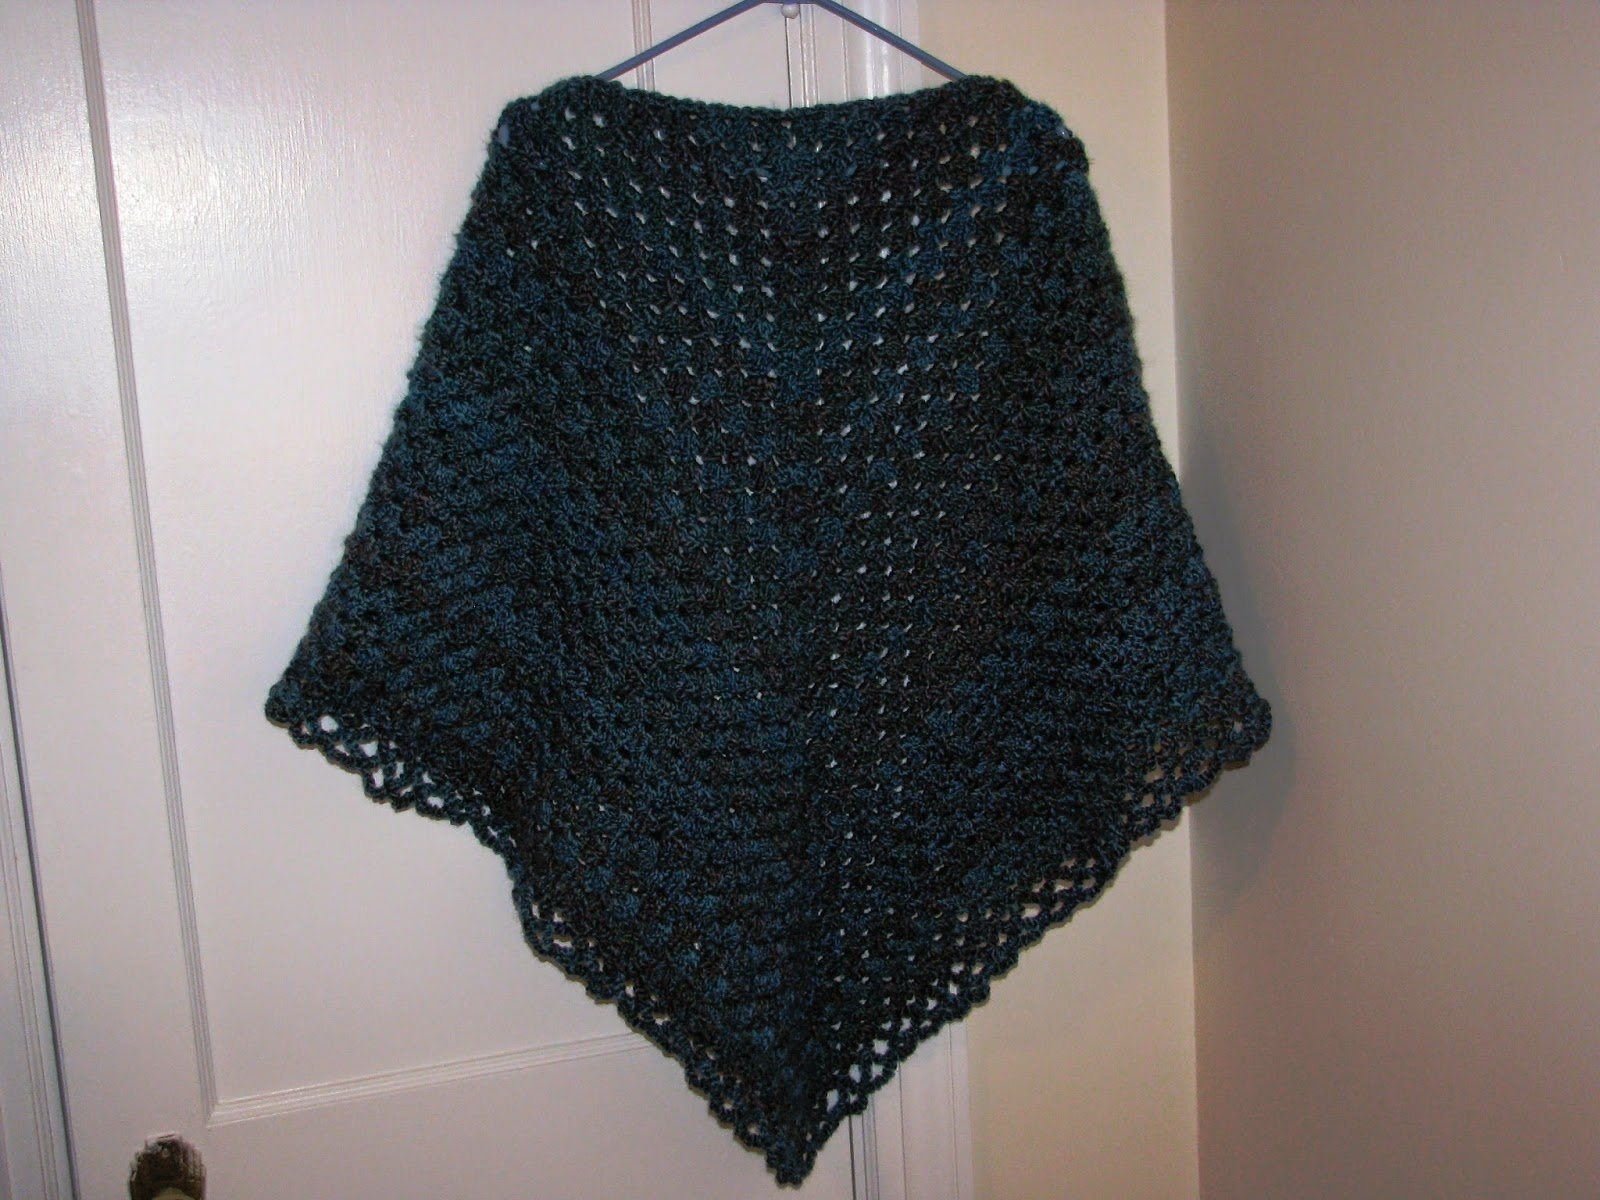 Craft Attic Resources: Triangular Prayer Shawl